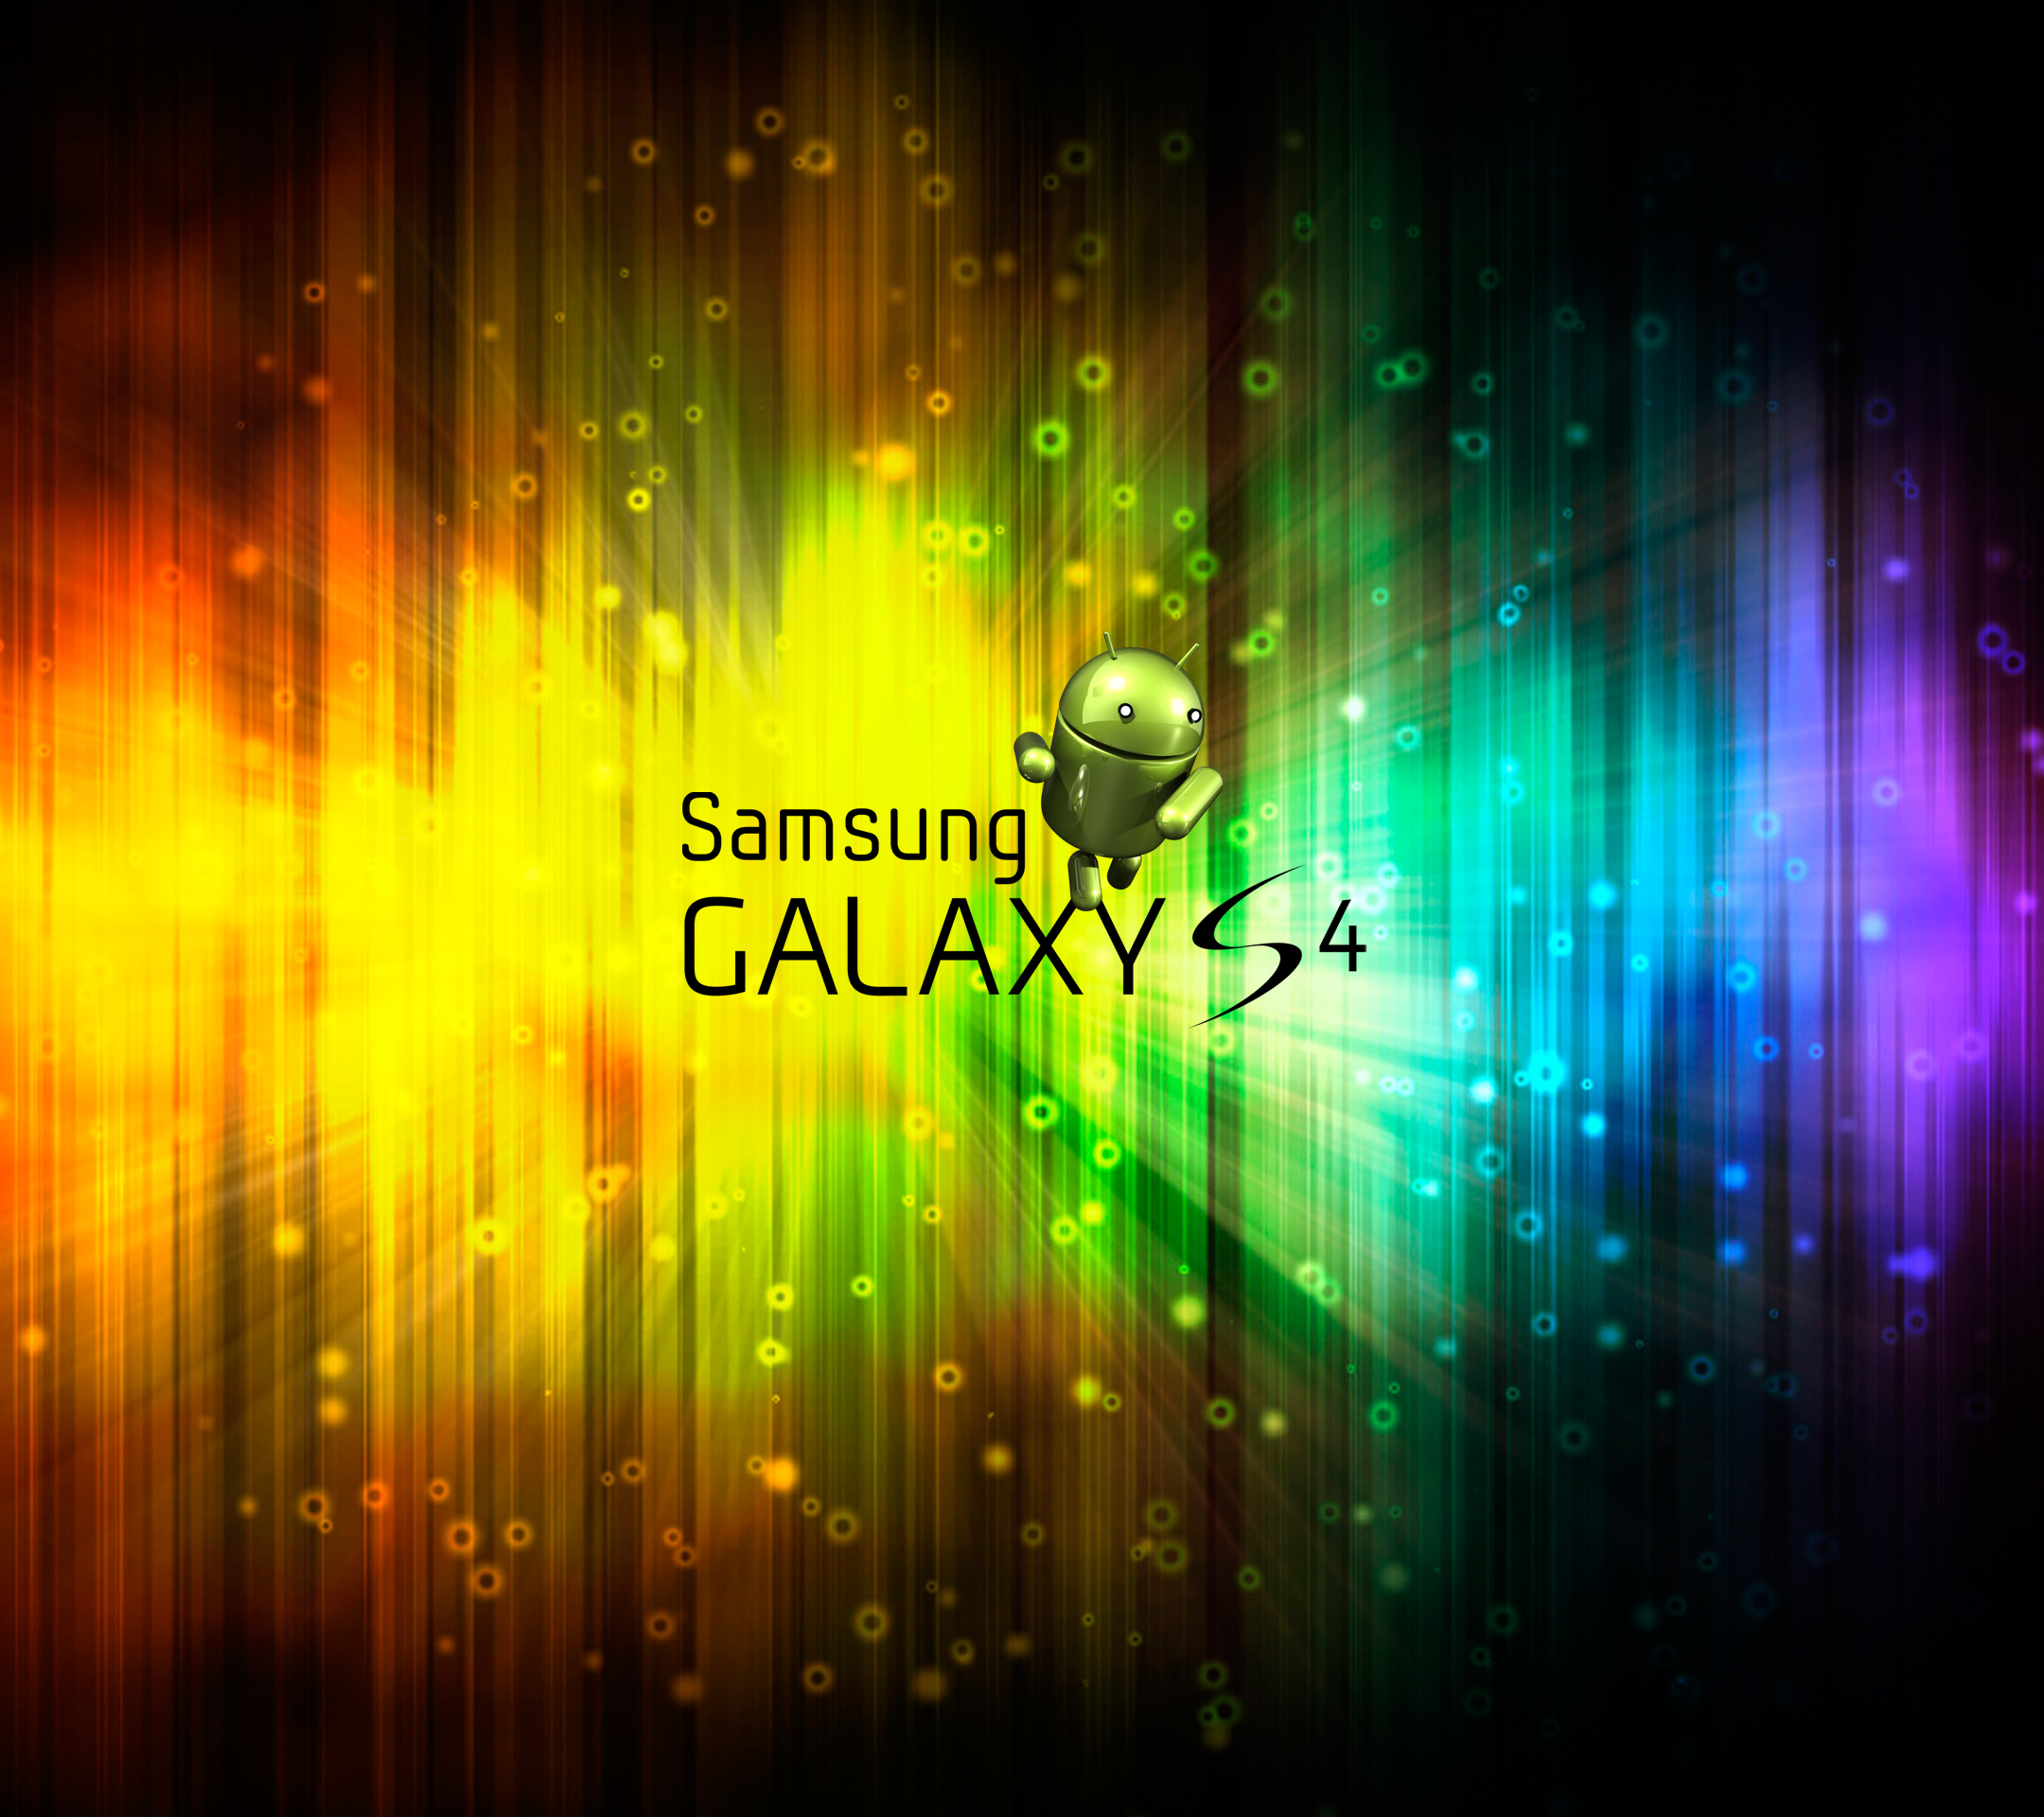 Samsung Galaxy S4 Wallpaper & Pictures